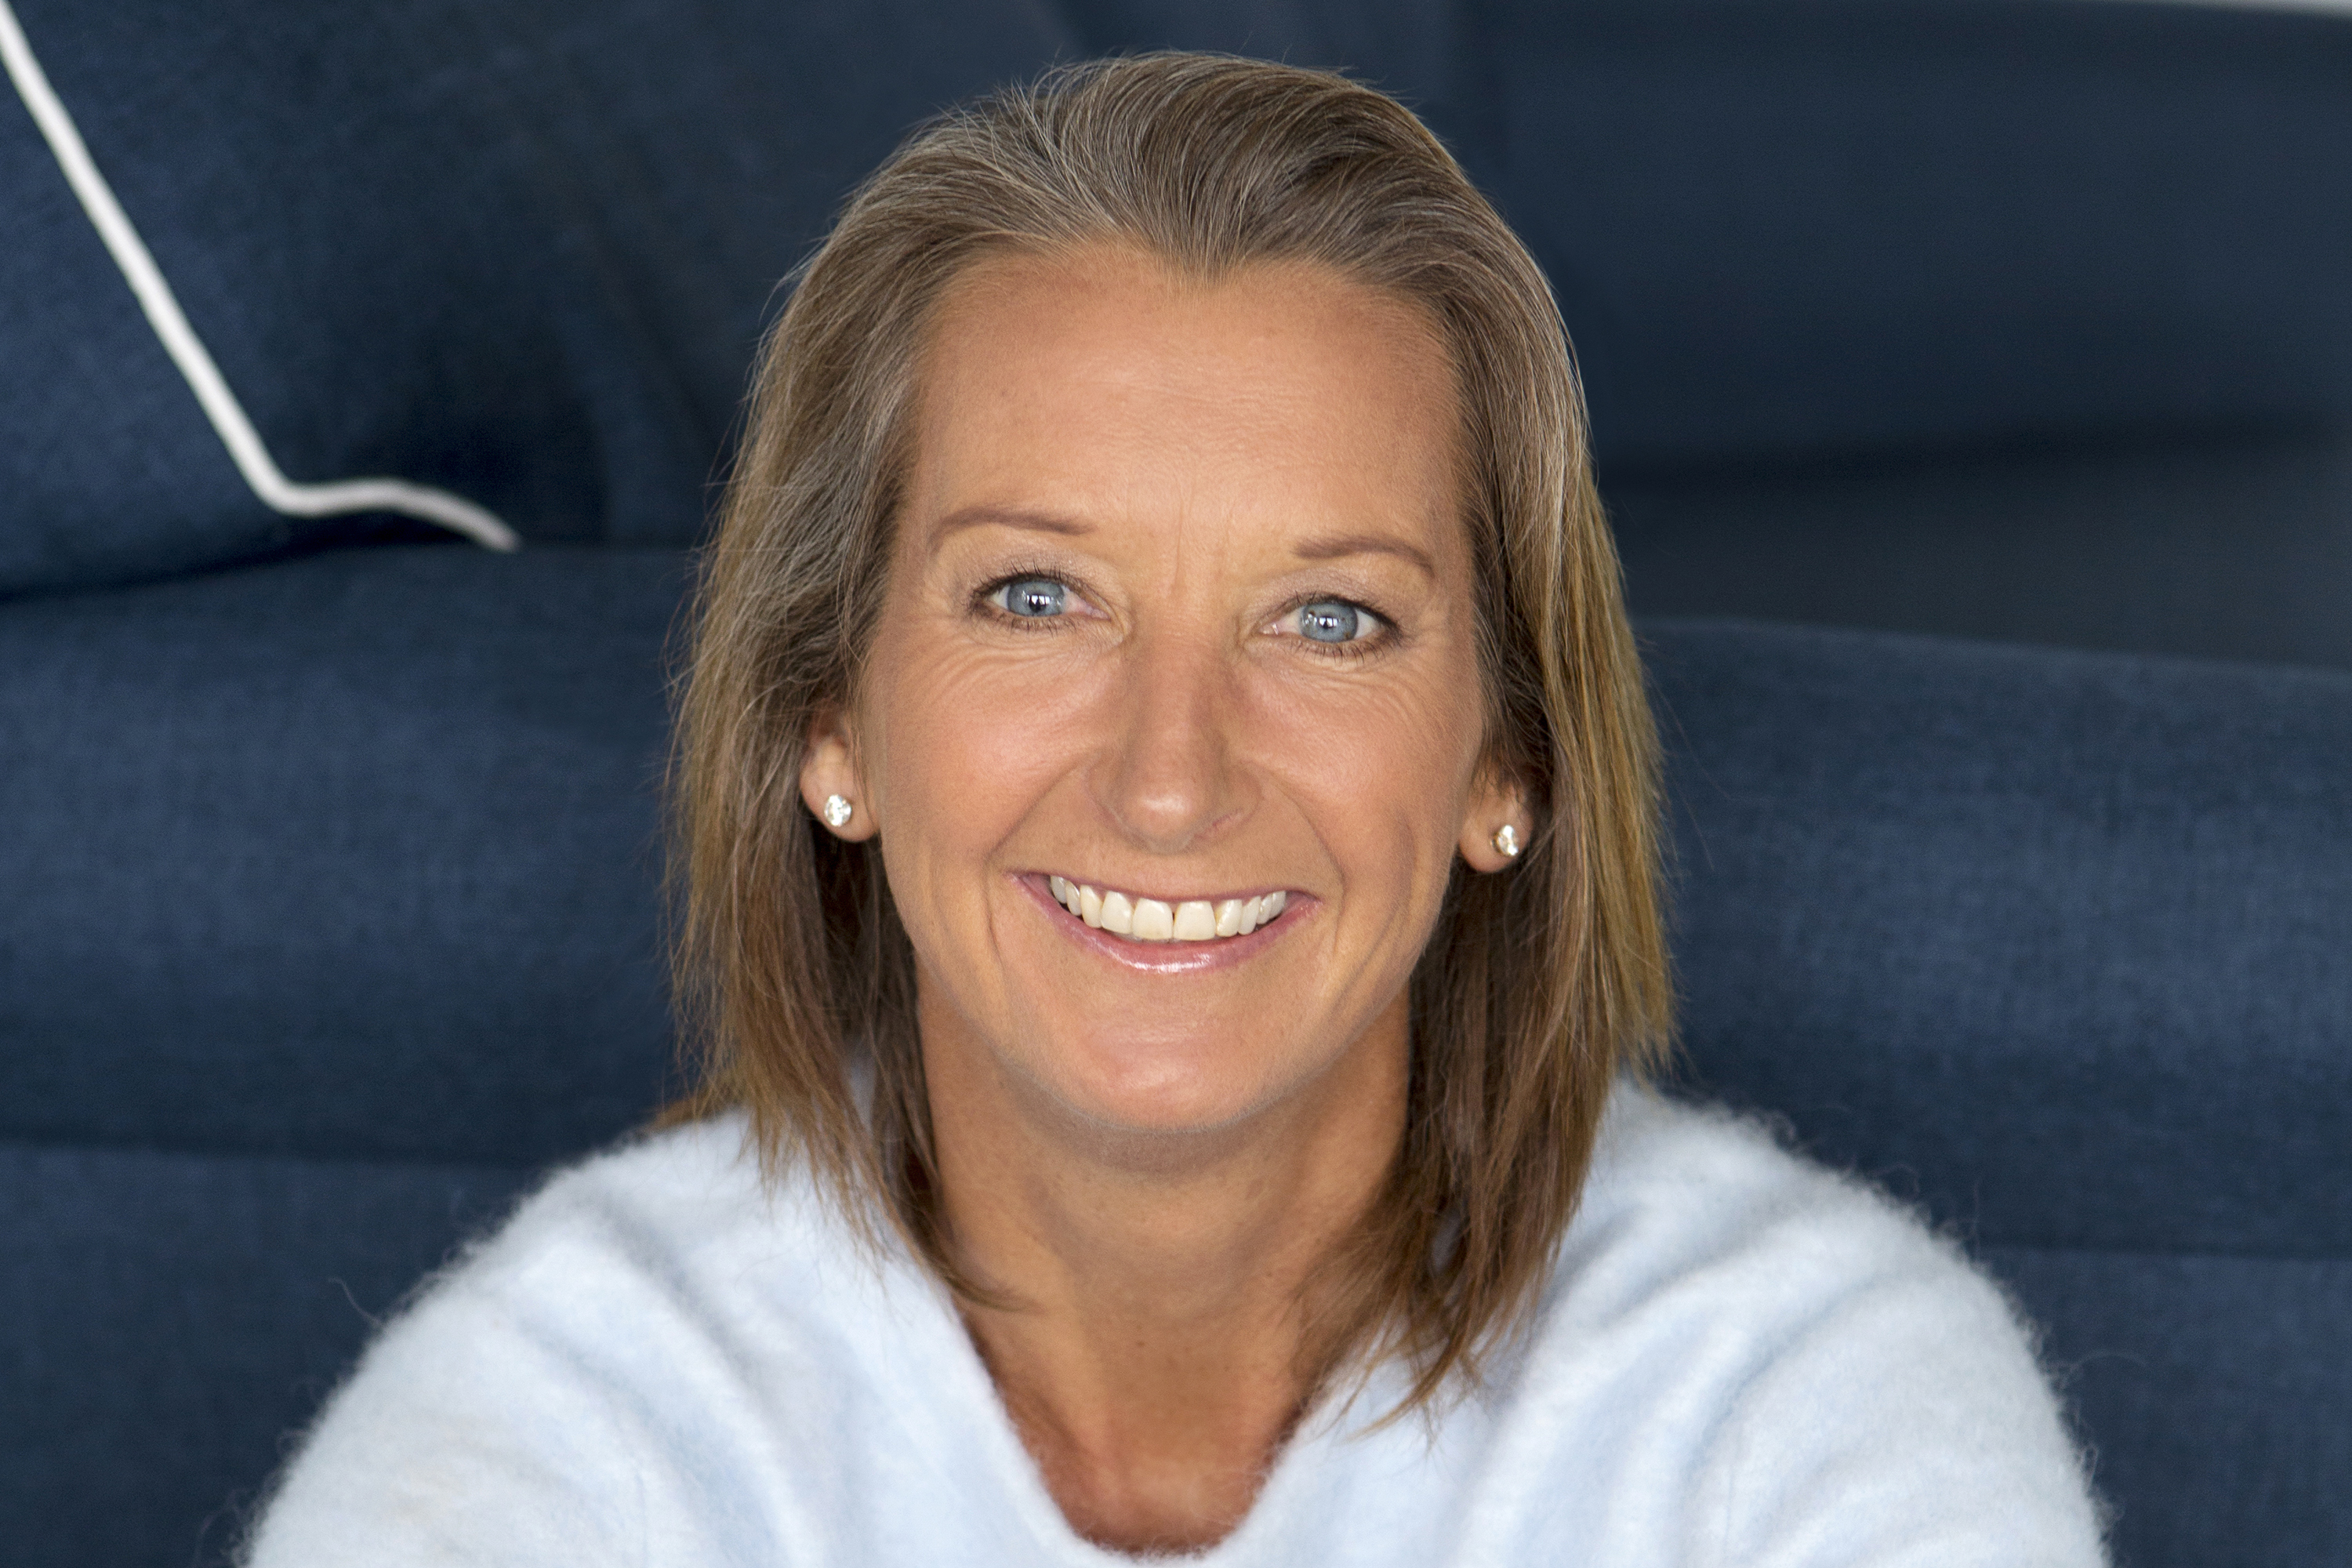 Speakers related to Shane Warne: Layne Beachley